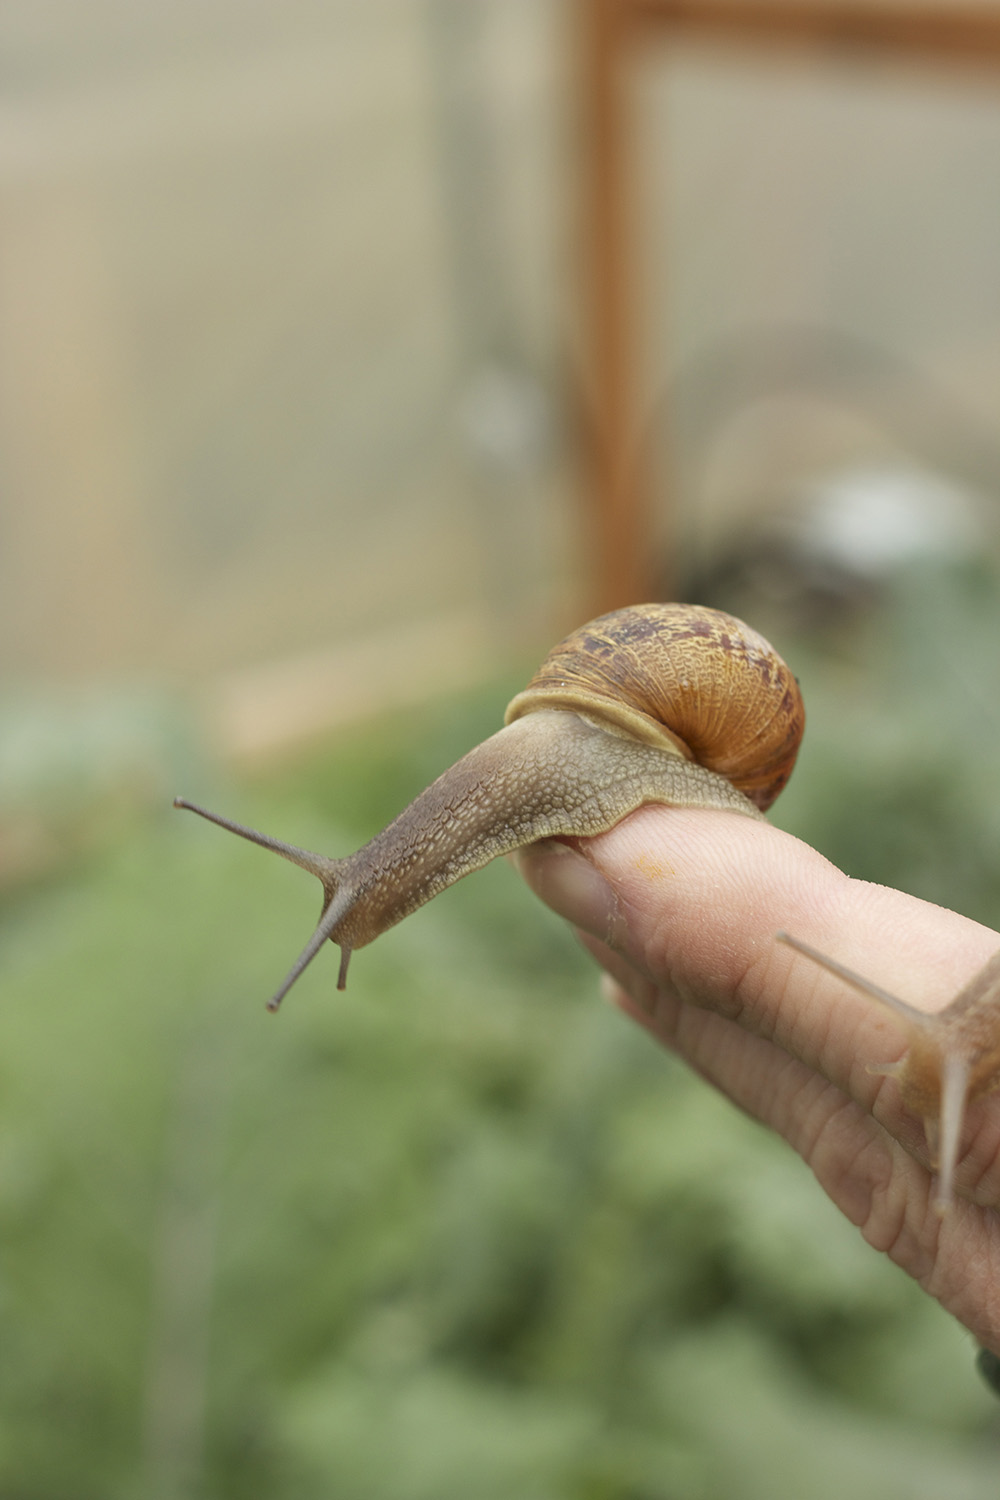 snail on hand